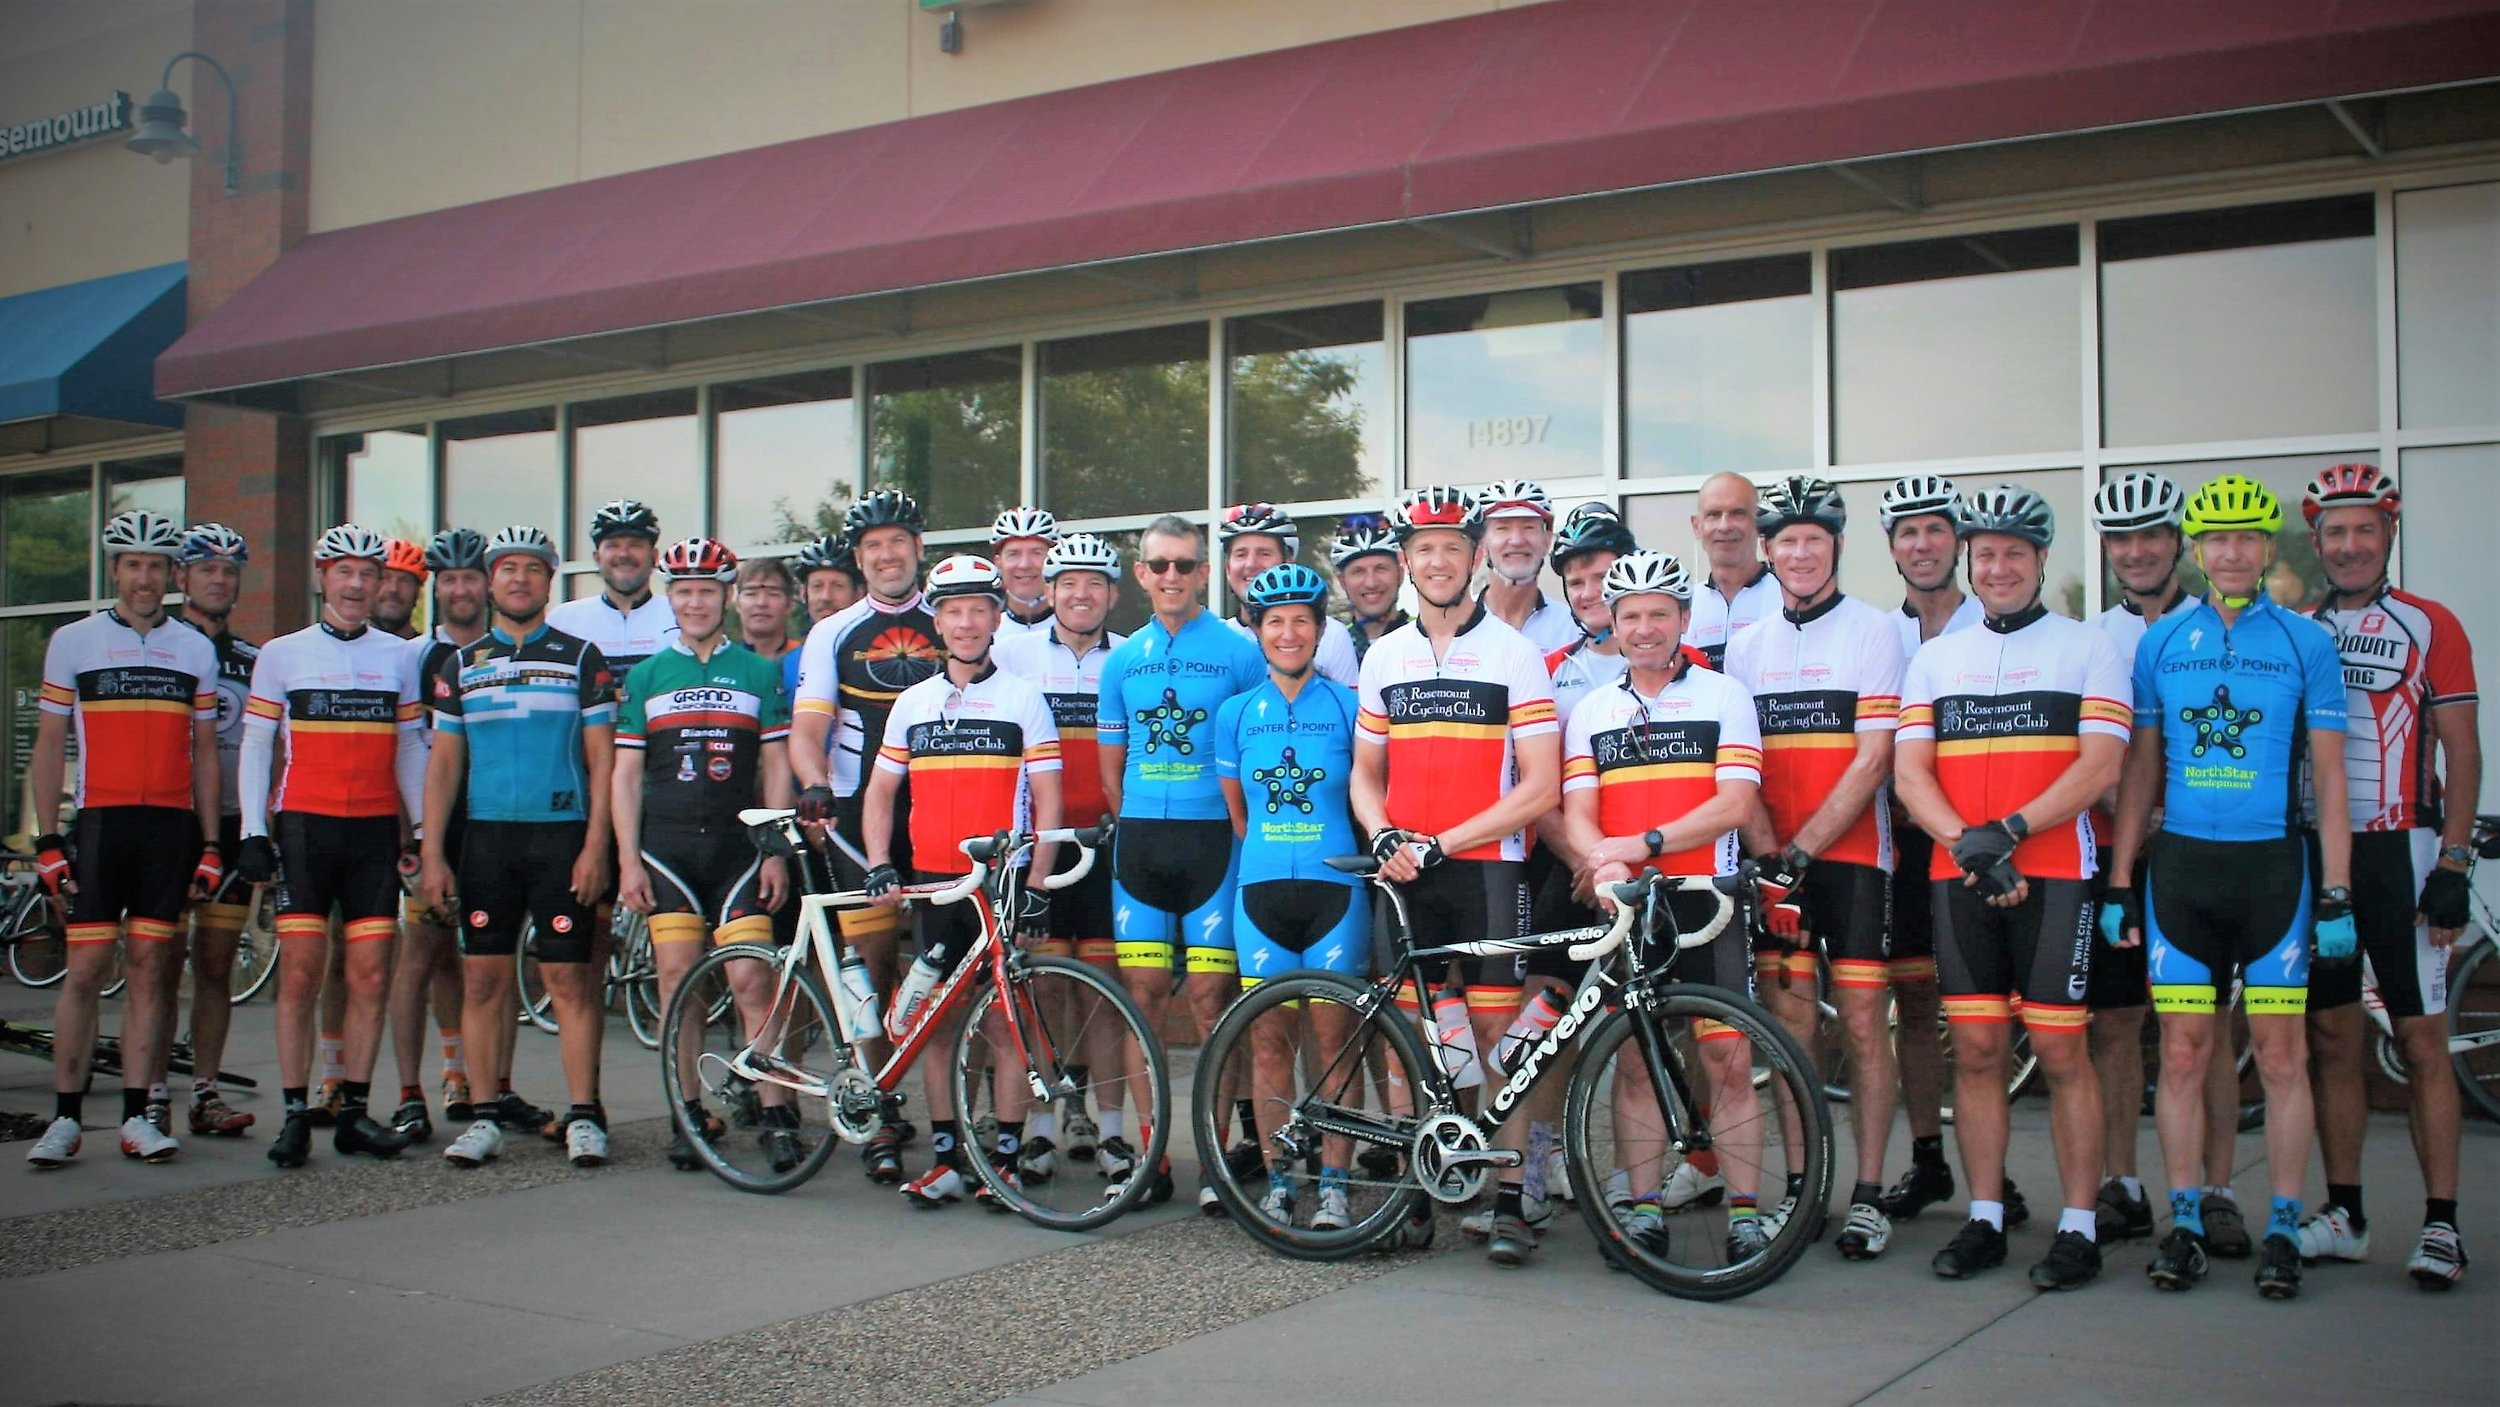 2018 - Riders gather for a photo before the club ride; 2018-06-23